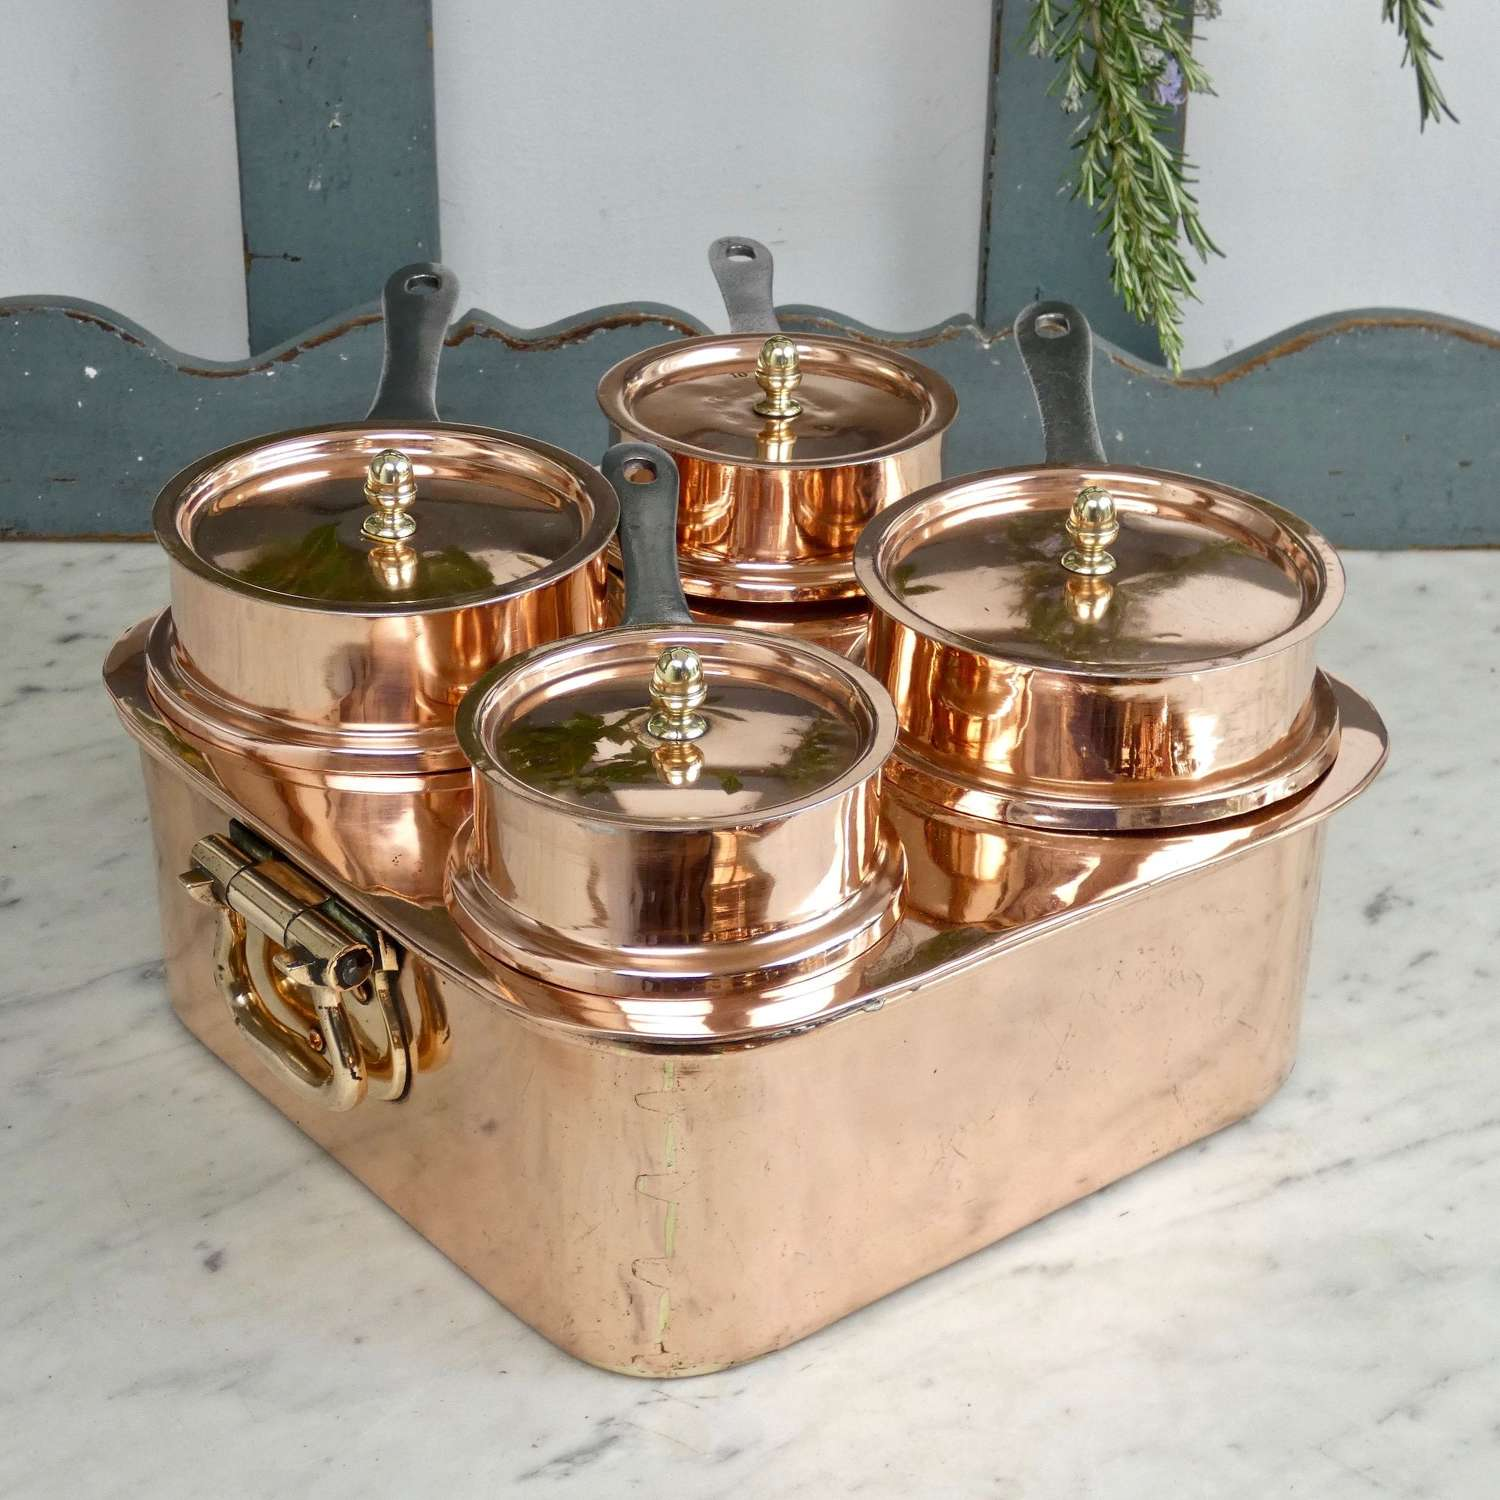 French copper, 4 pan bain marie set